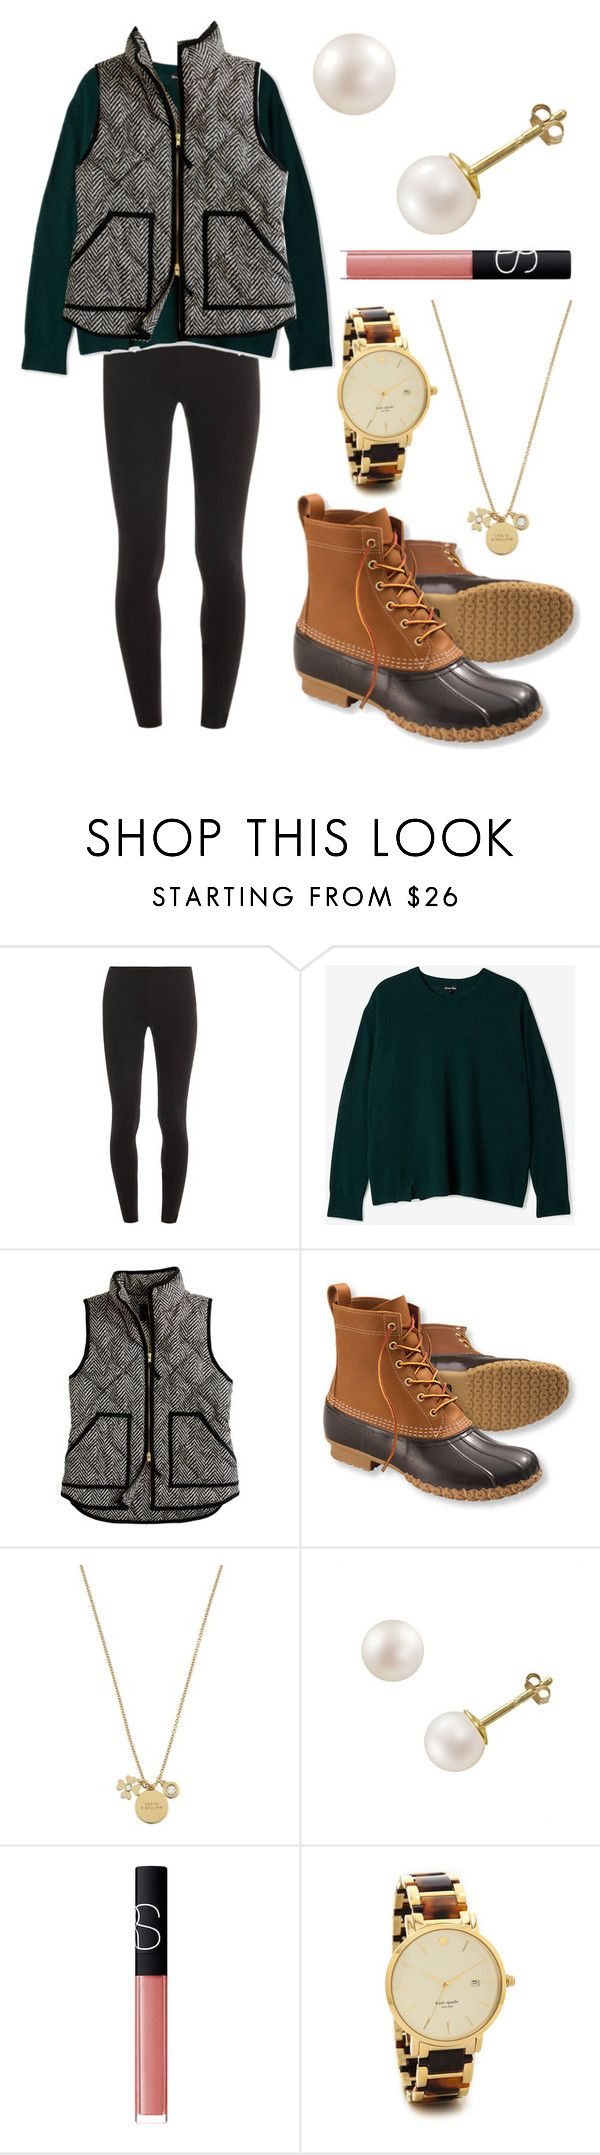 """""""All the small things"""" by emmacaseyyyy ❤ liked on Polyvore featuring Splendid, Steven Alan, J.Crew, L.L.Bean, Kate Spade, PearLustre by Imperial and NARS Cosmetics"""